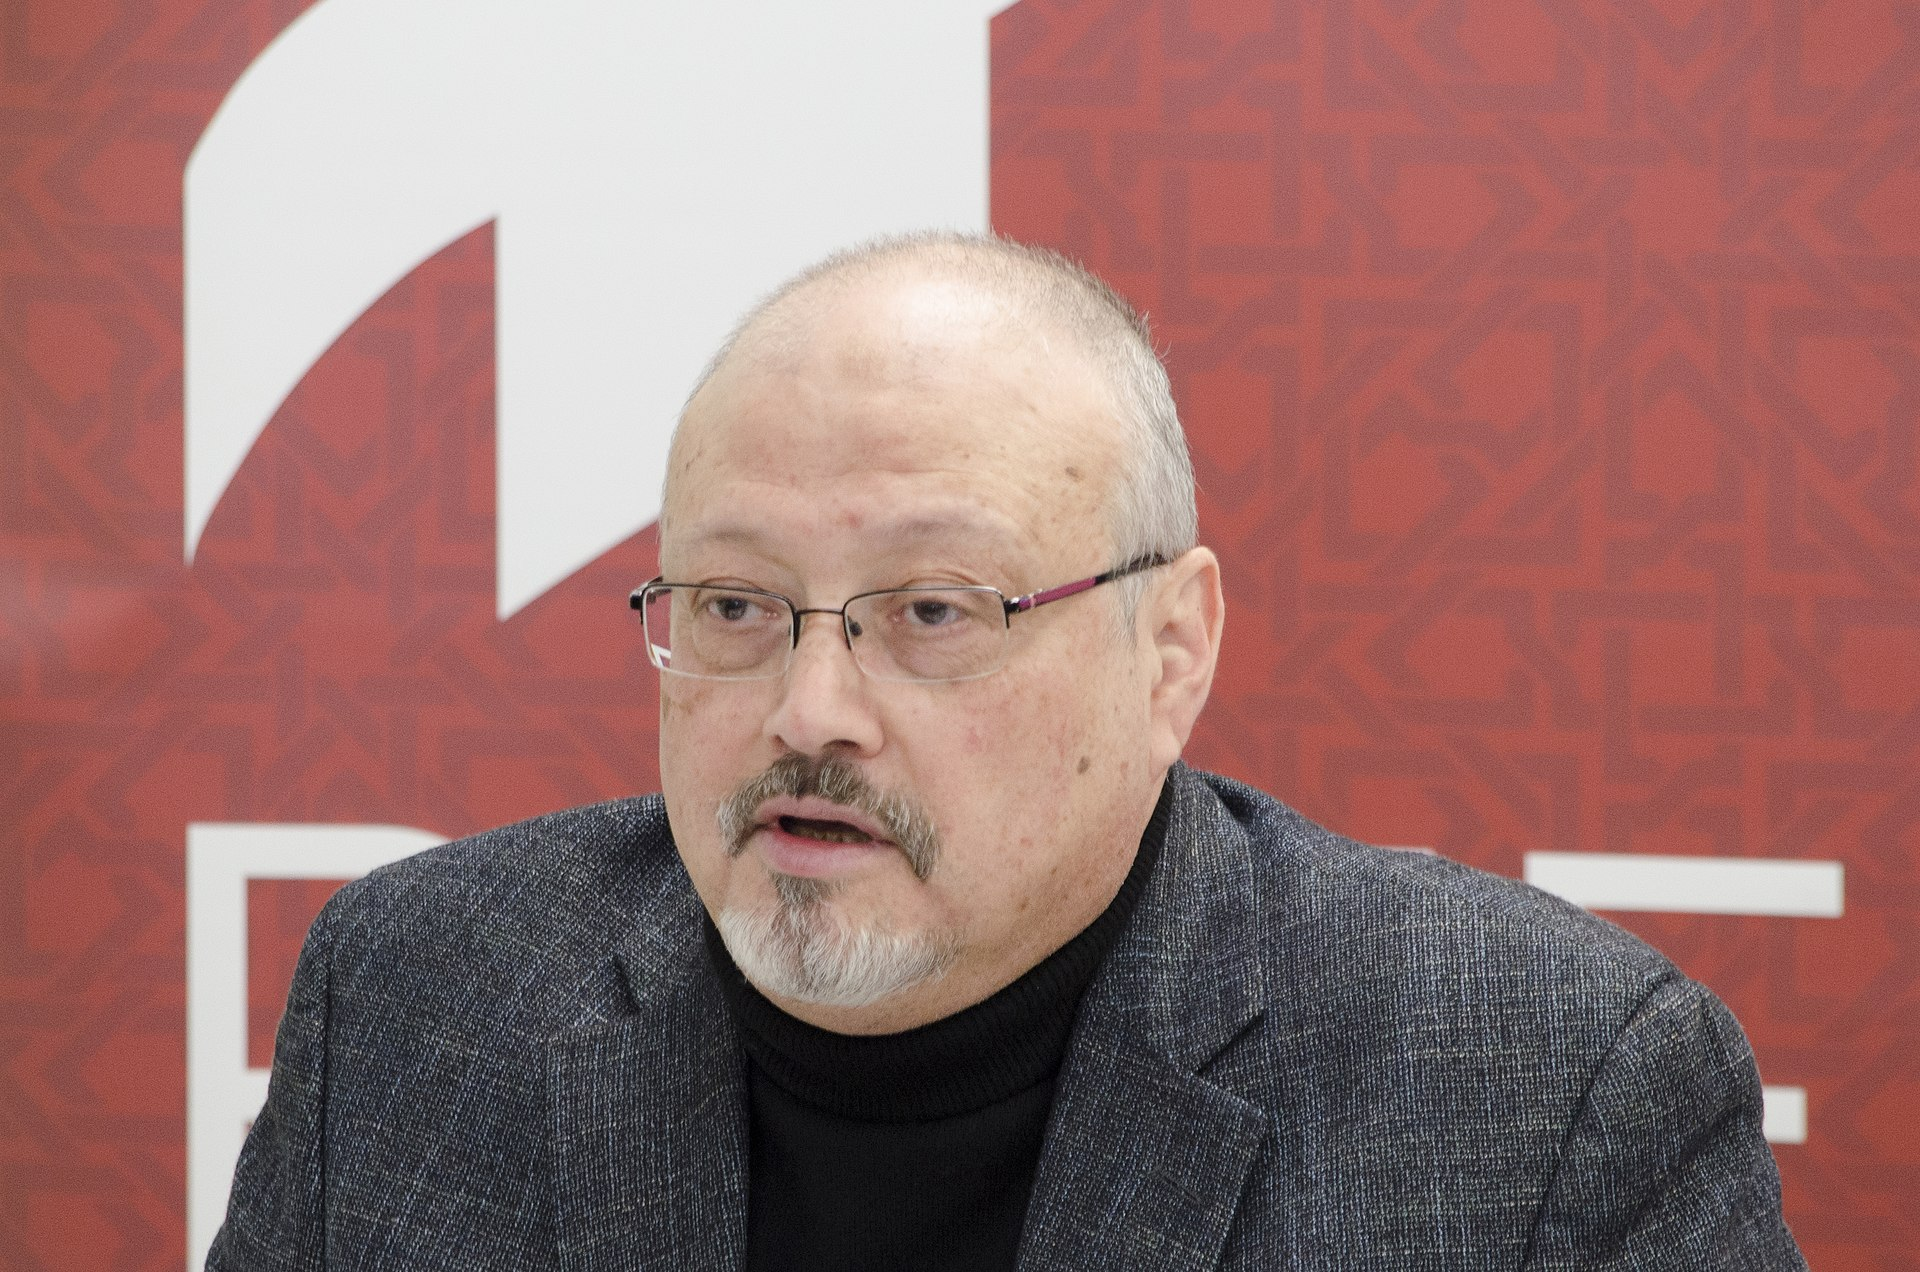 Saudi Arabia court convicts 8 individuals for Jamal Khashoggi murder